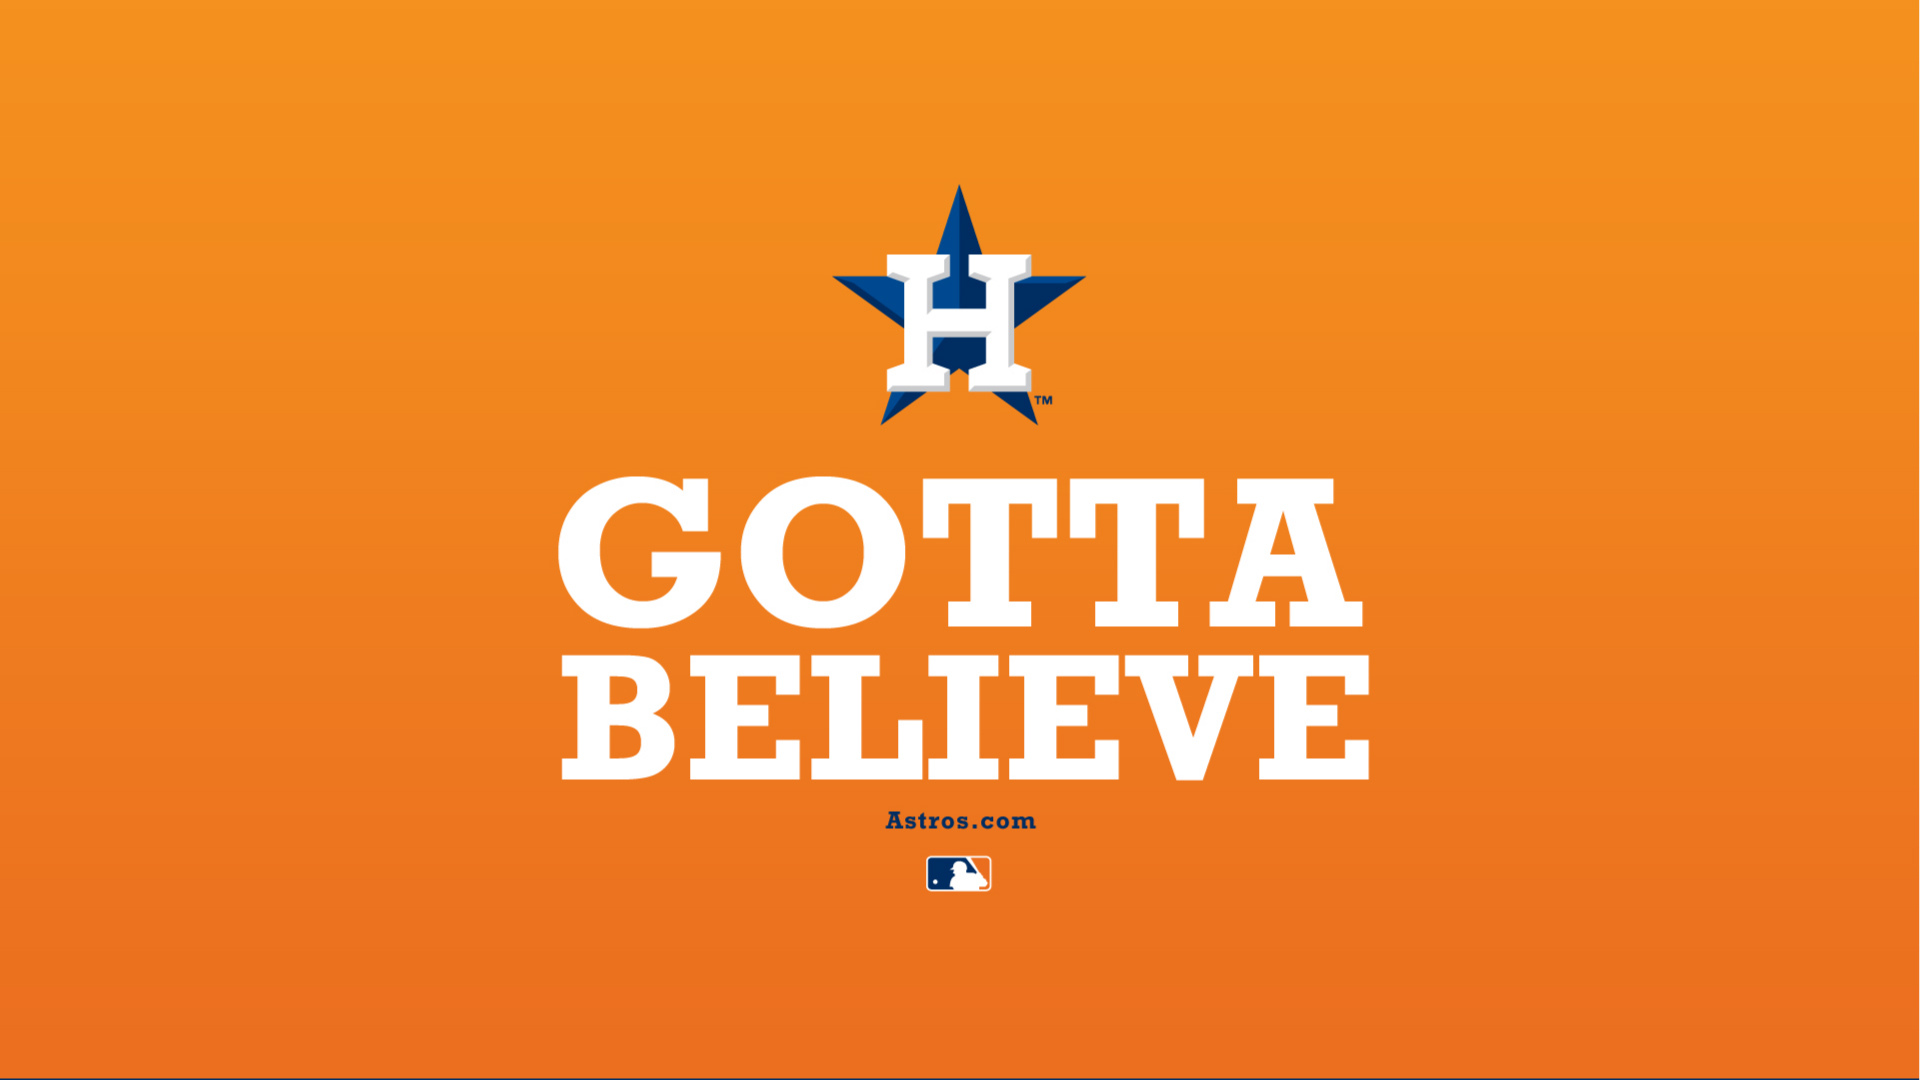 Houston Astros Wallpaper   Desktop Phone Tablet Houston Astros 1920x1080